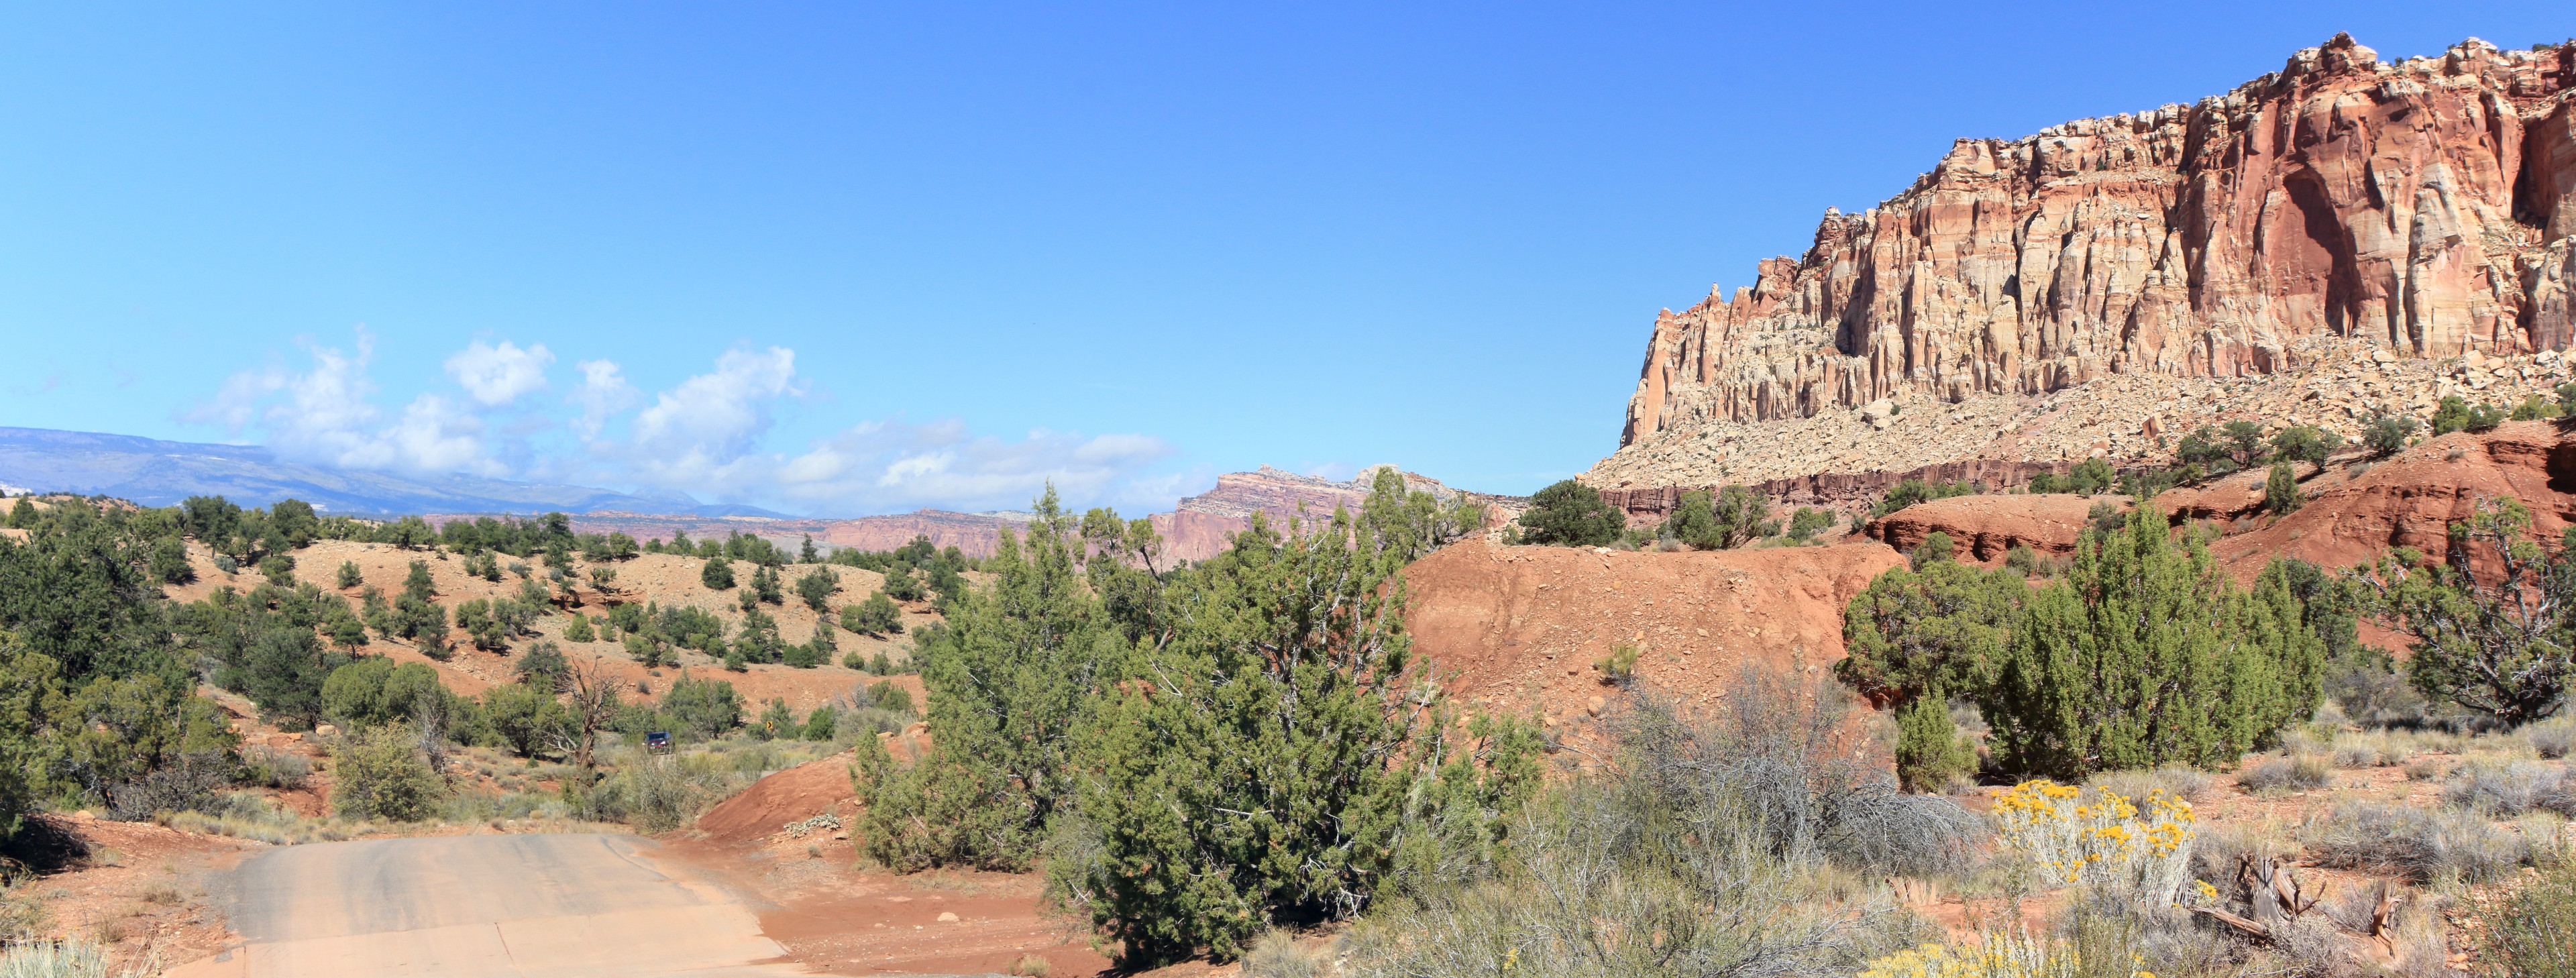 Another Long View North. This long view is taken from near the entrance to the Capitol Gorge. Although the reed extent is not a visible as it is in some of the other views, a large context is available from the high walls of the reef on the right, through the extent of the reef running north, the rise of Boulder mountain in the distant left and the colourful desert valley in between.